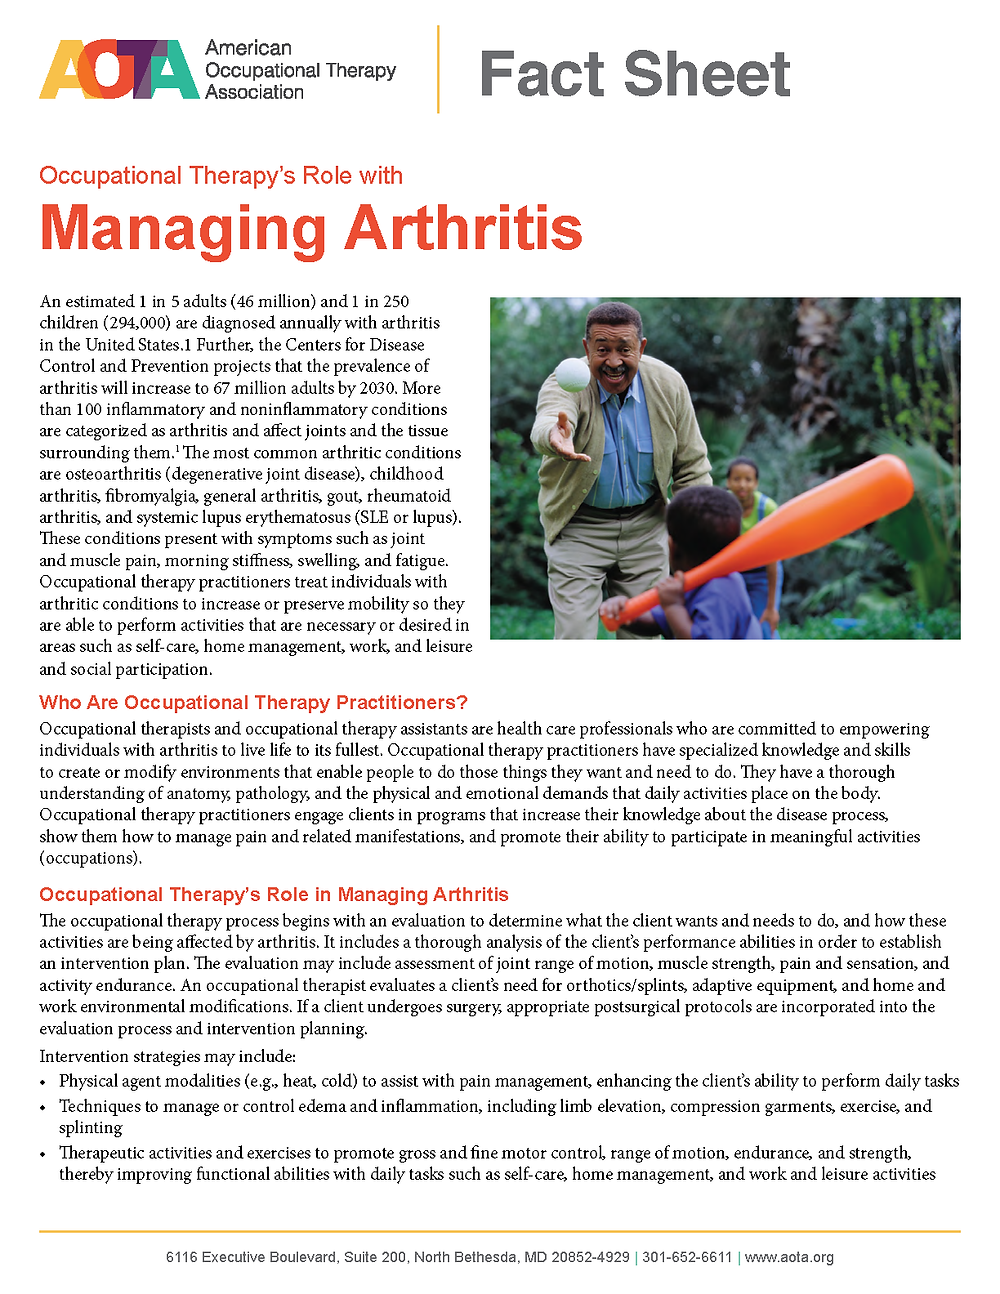 Developed by Lenore Frost, PhD, OTR/L, CHT, and Fran Harmeyer, OTR/L, for the American Occupational Therapy Association. Copyright © 2011 by the American Occupational Therapy Association. This material may be copied and distributed for personal or educational uses without written consent. For all other uses, contact copyright@aota.org.